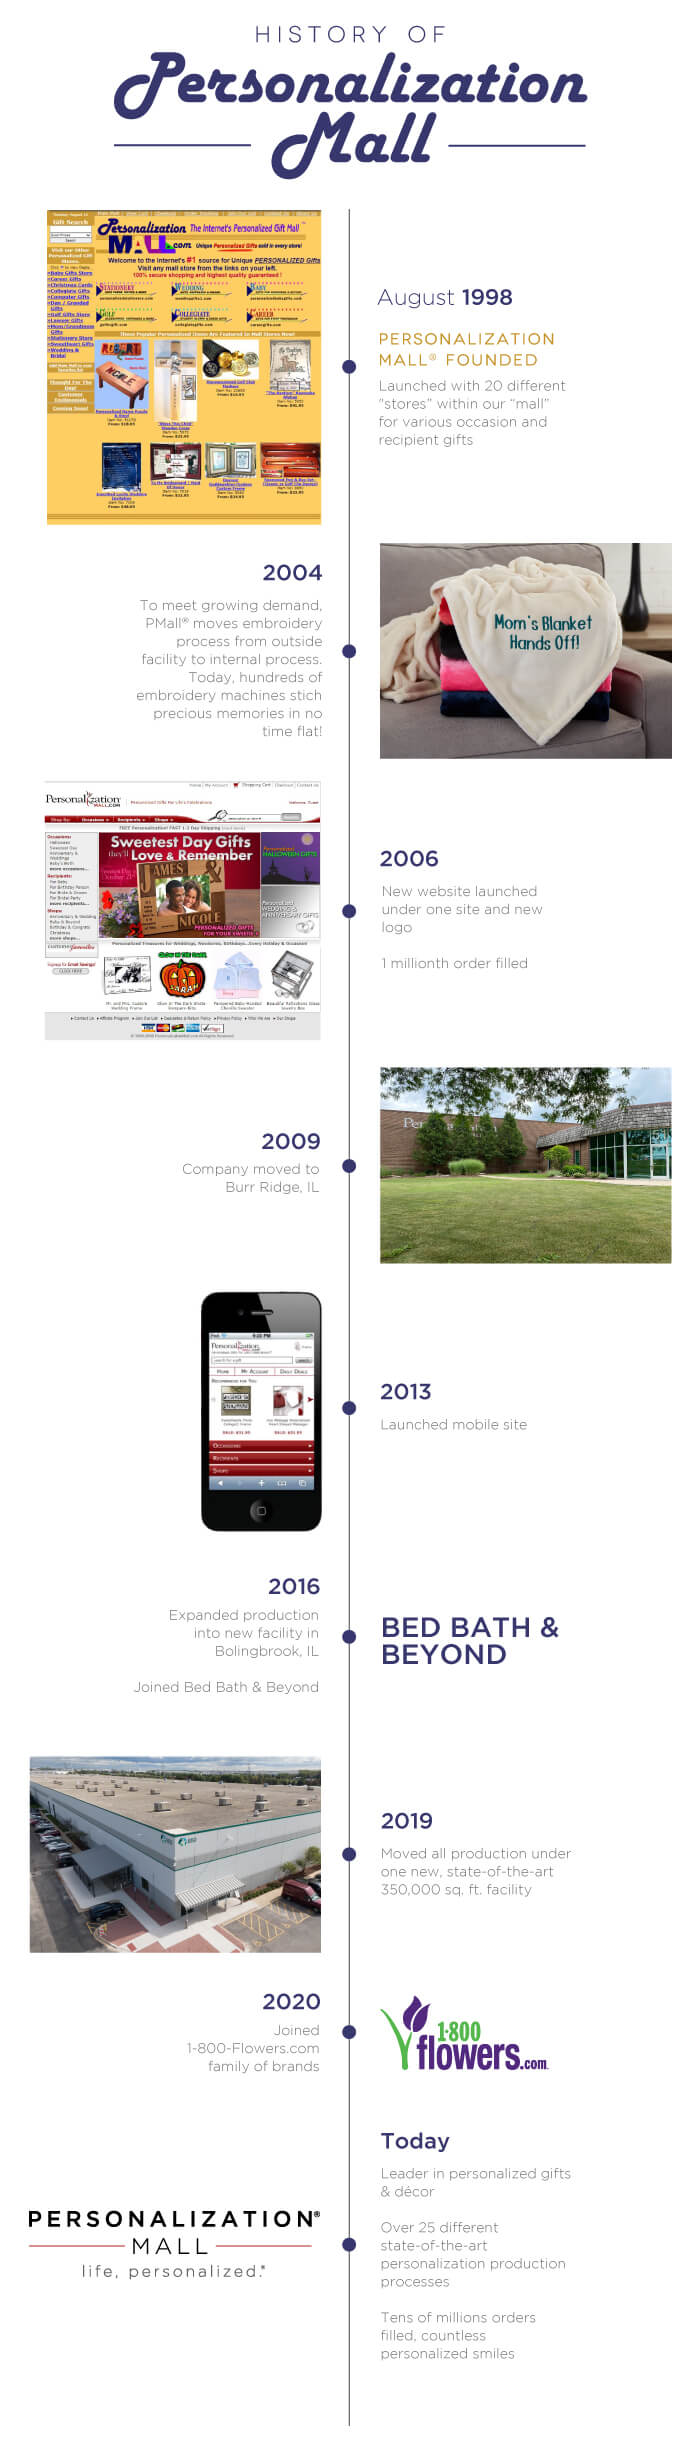 History of Personalization Mall - 23 Year Timeline